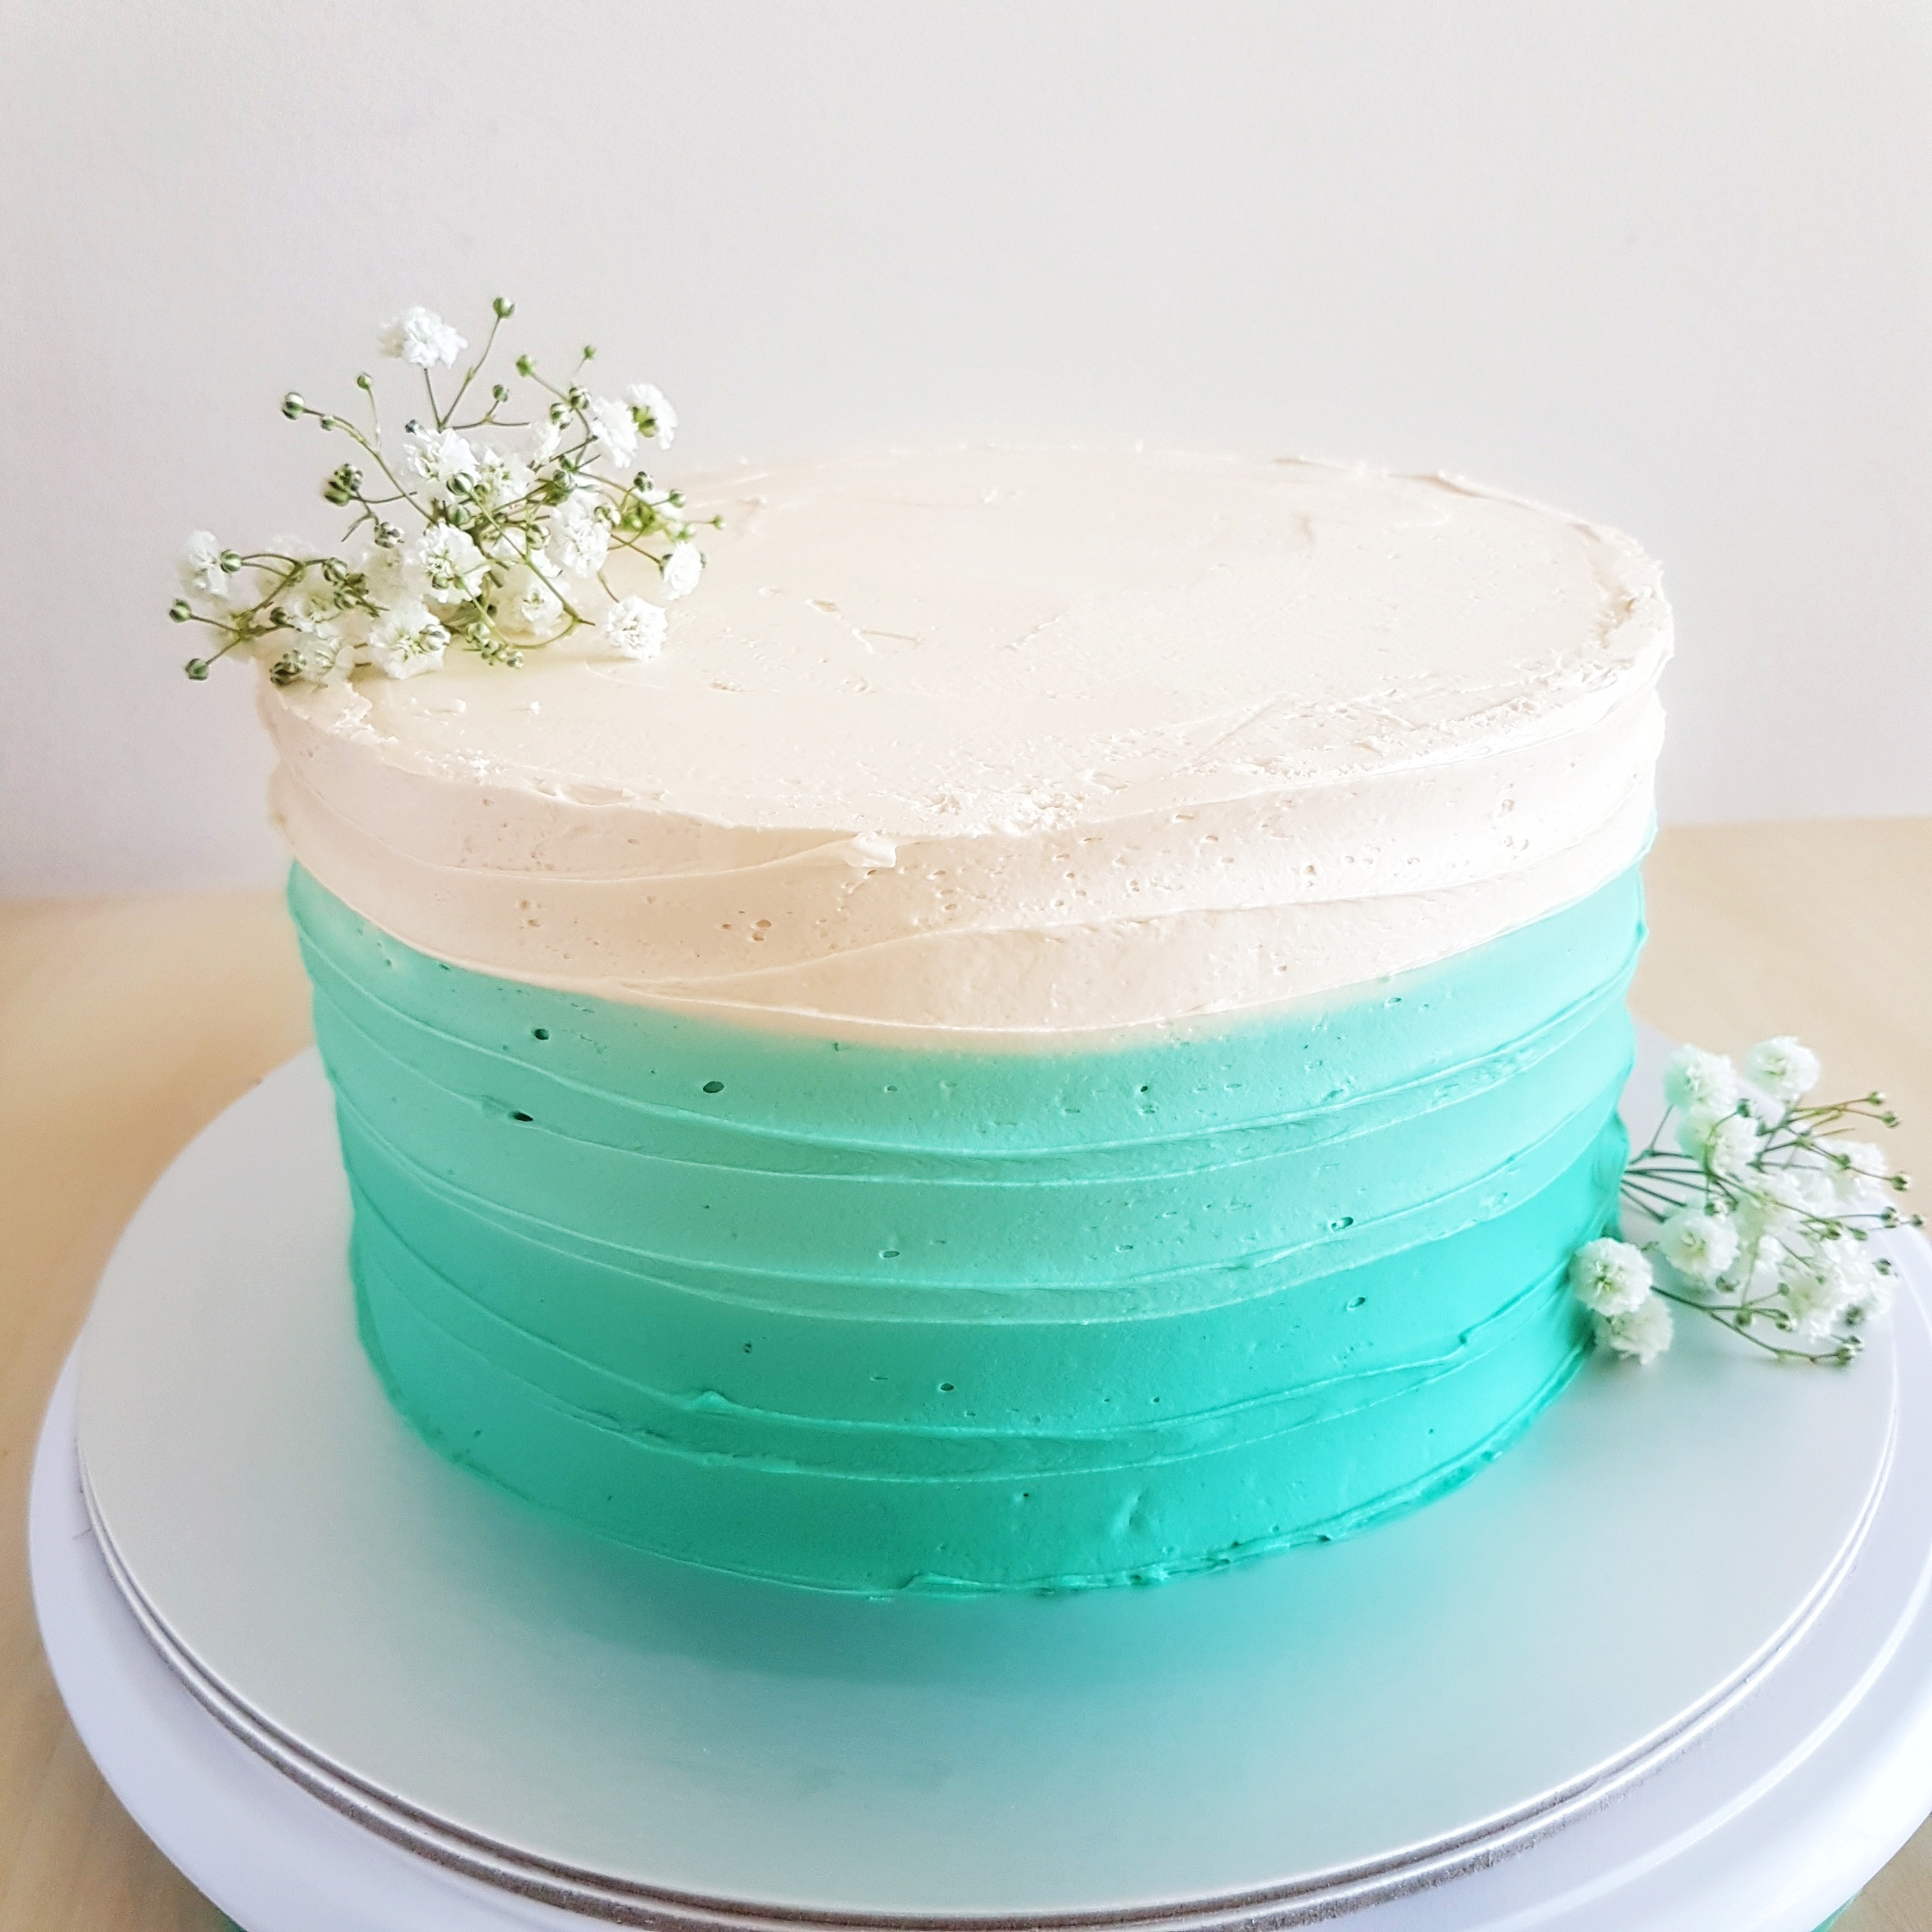 Tiffany Blue Ombre Cake by The Baking Experiment